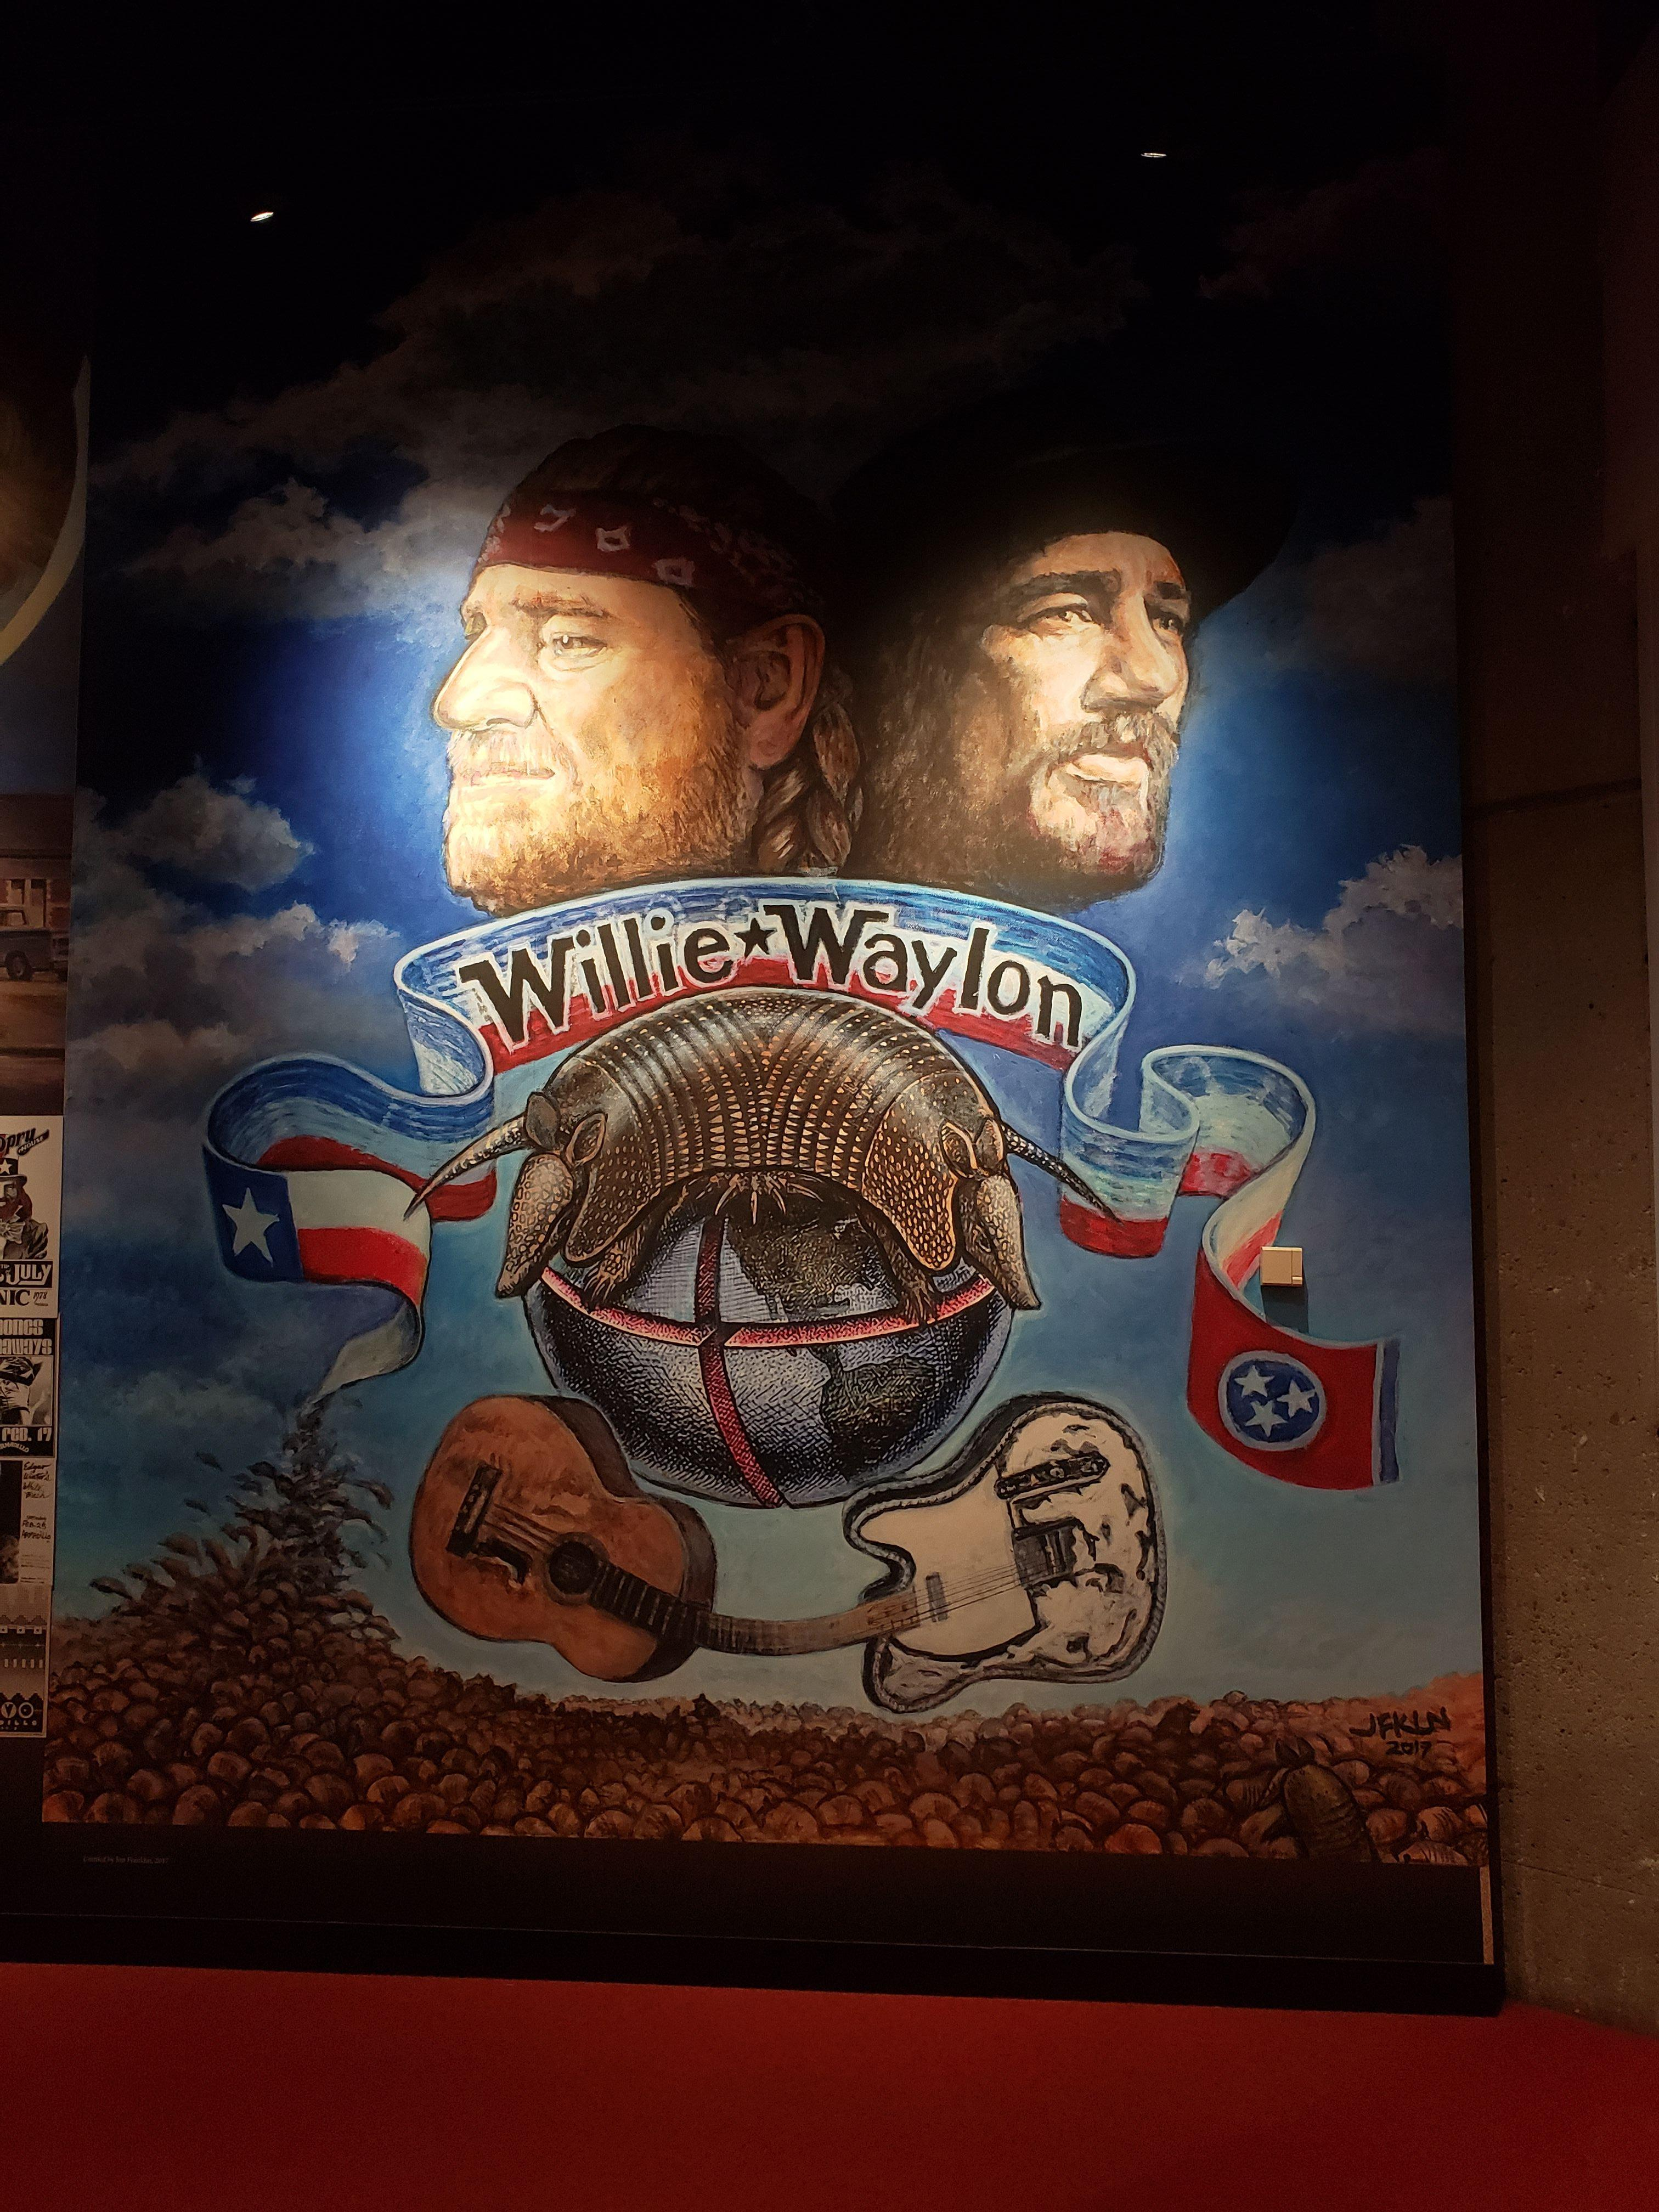 Willie and Waylon Picture at the Country Music Hall of Fame and Museum